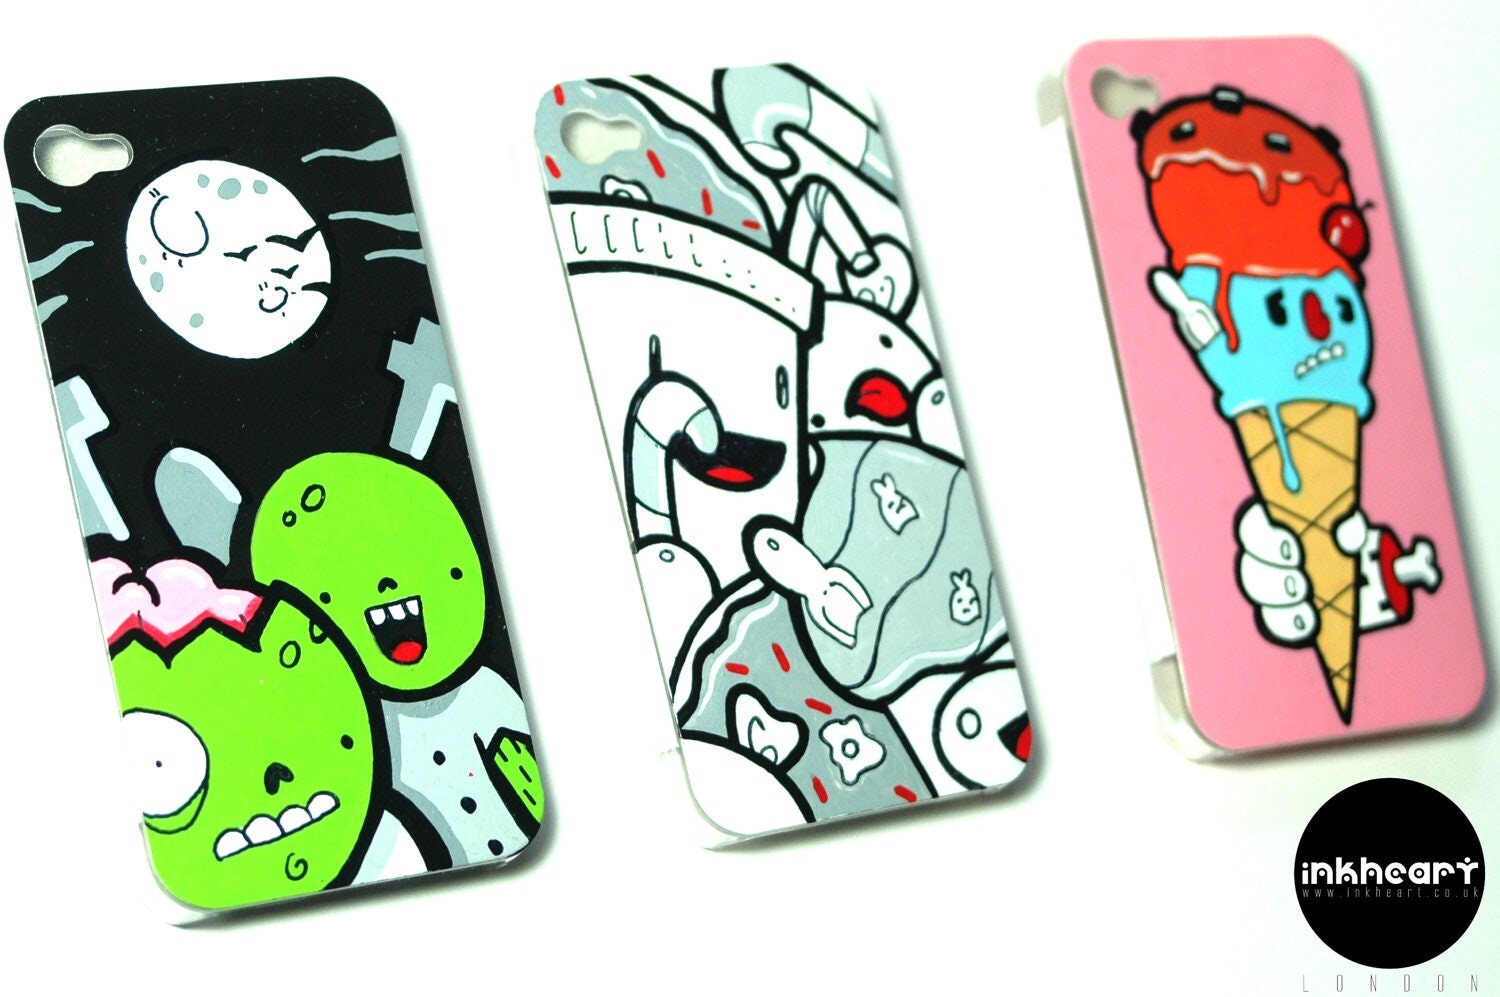 Kawaii Handpainted iPhone Cases